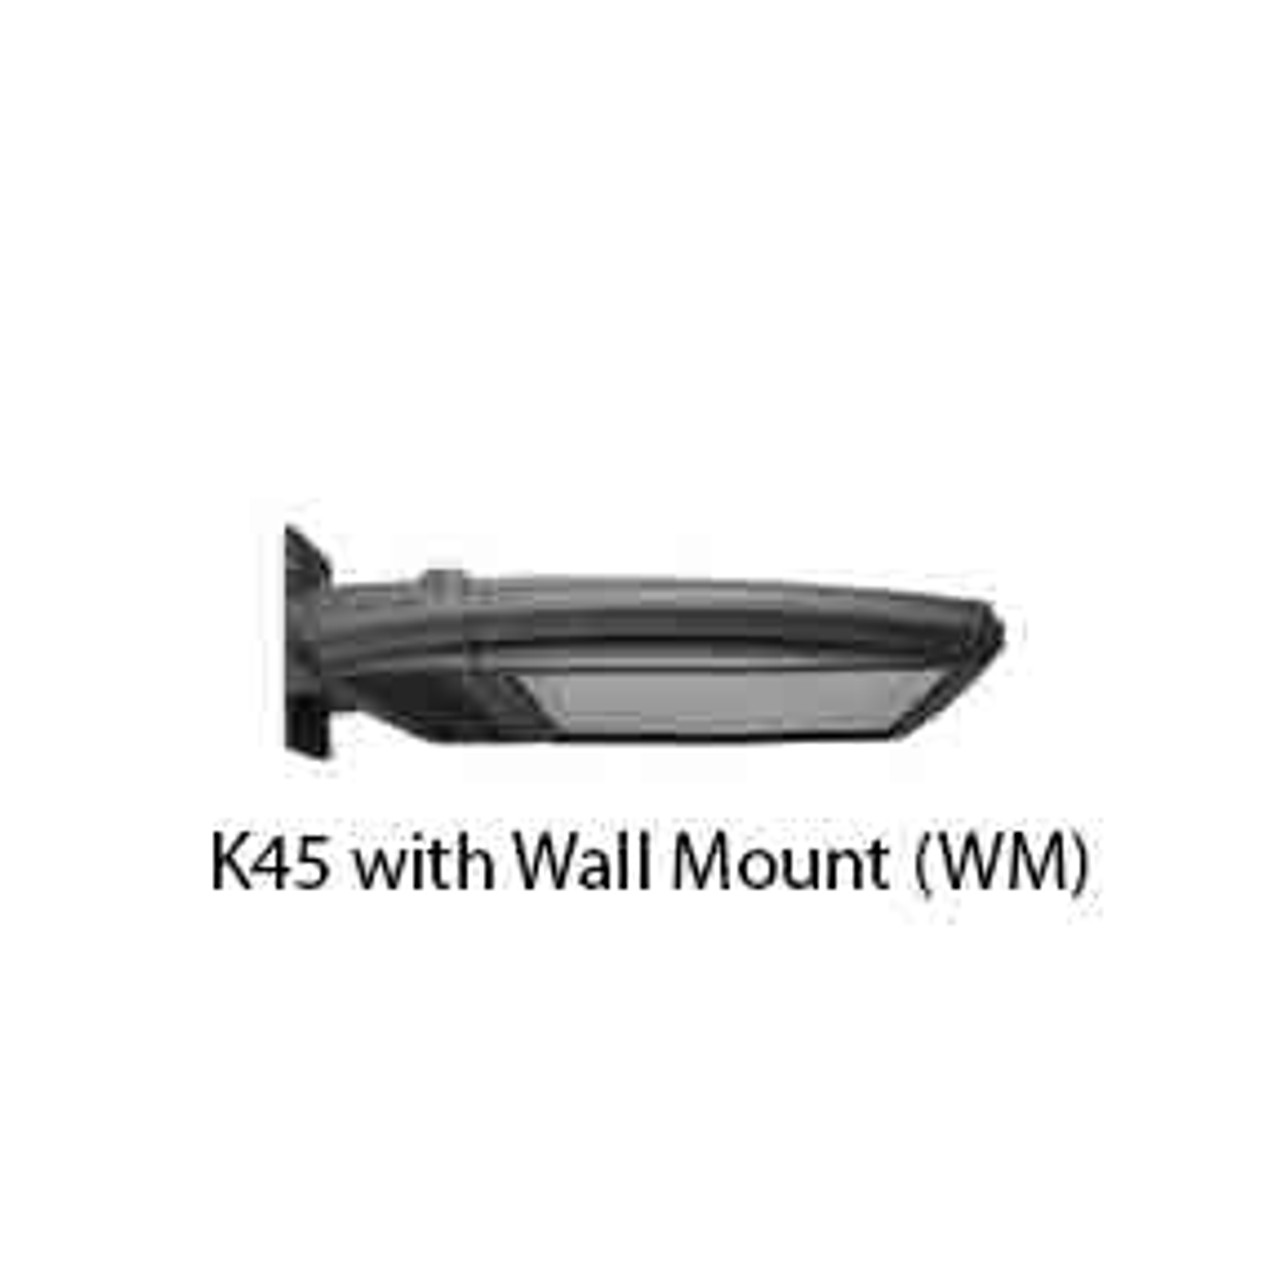 K45 with Wall Mount (WM)